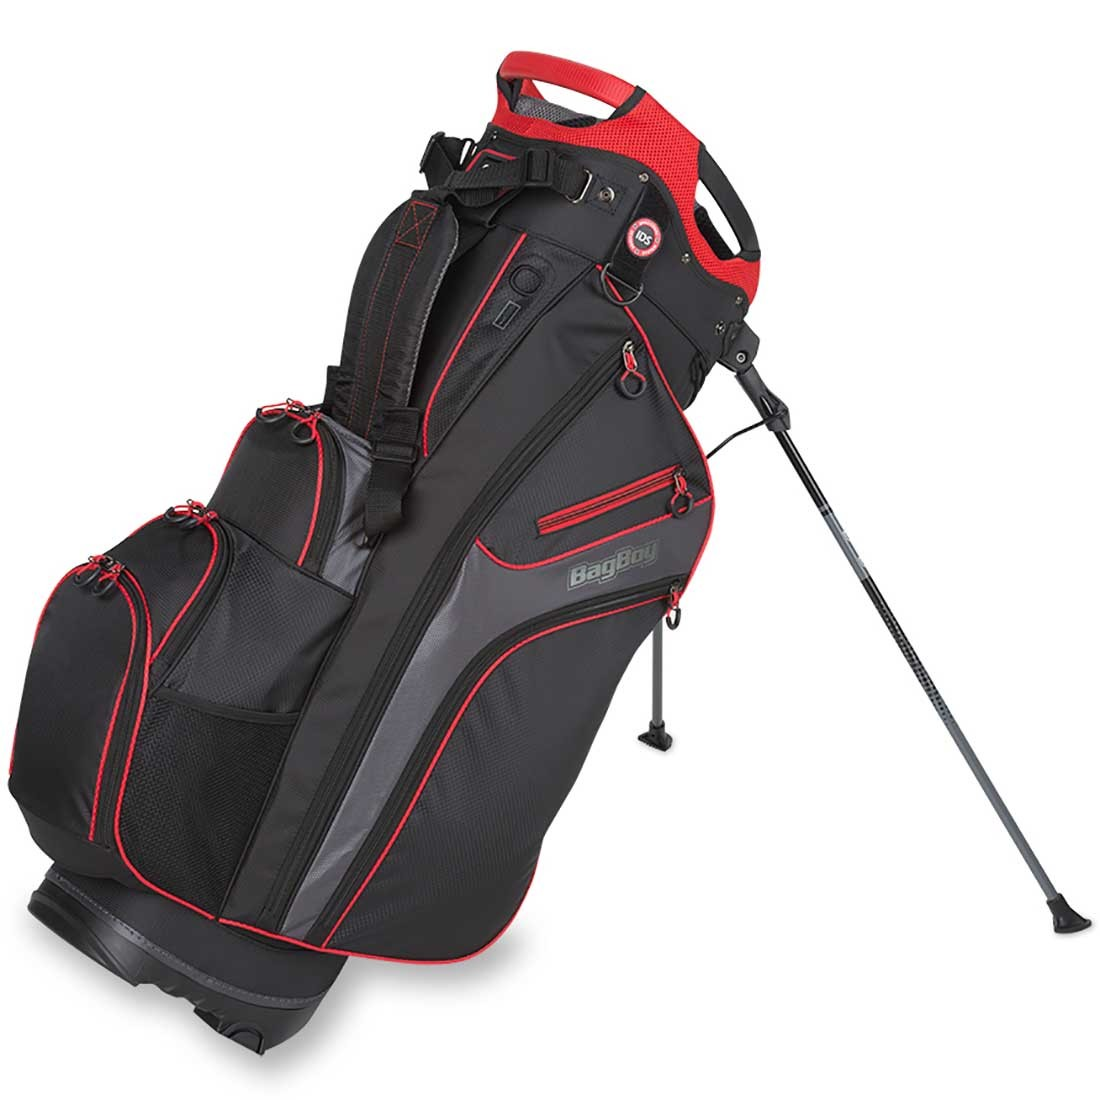 Bag Boy Chiller Hybrid Stand Bag Black Red